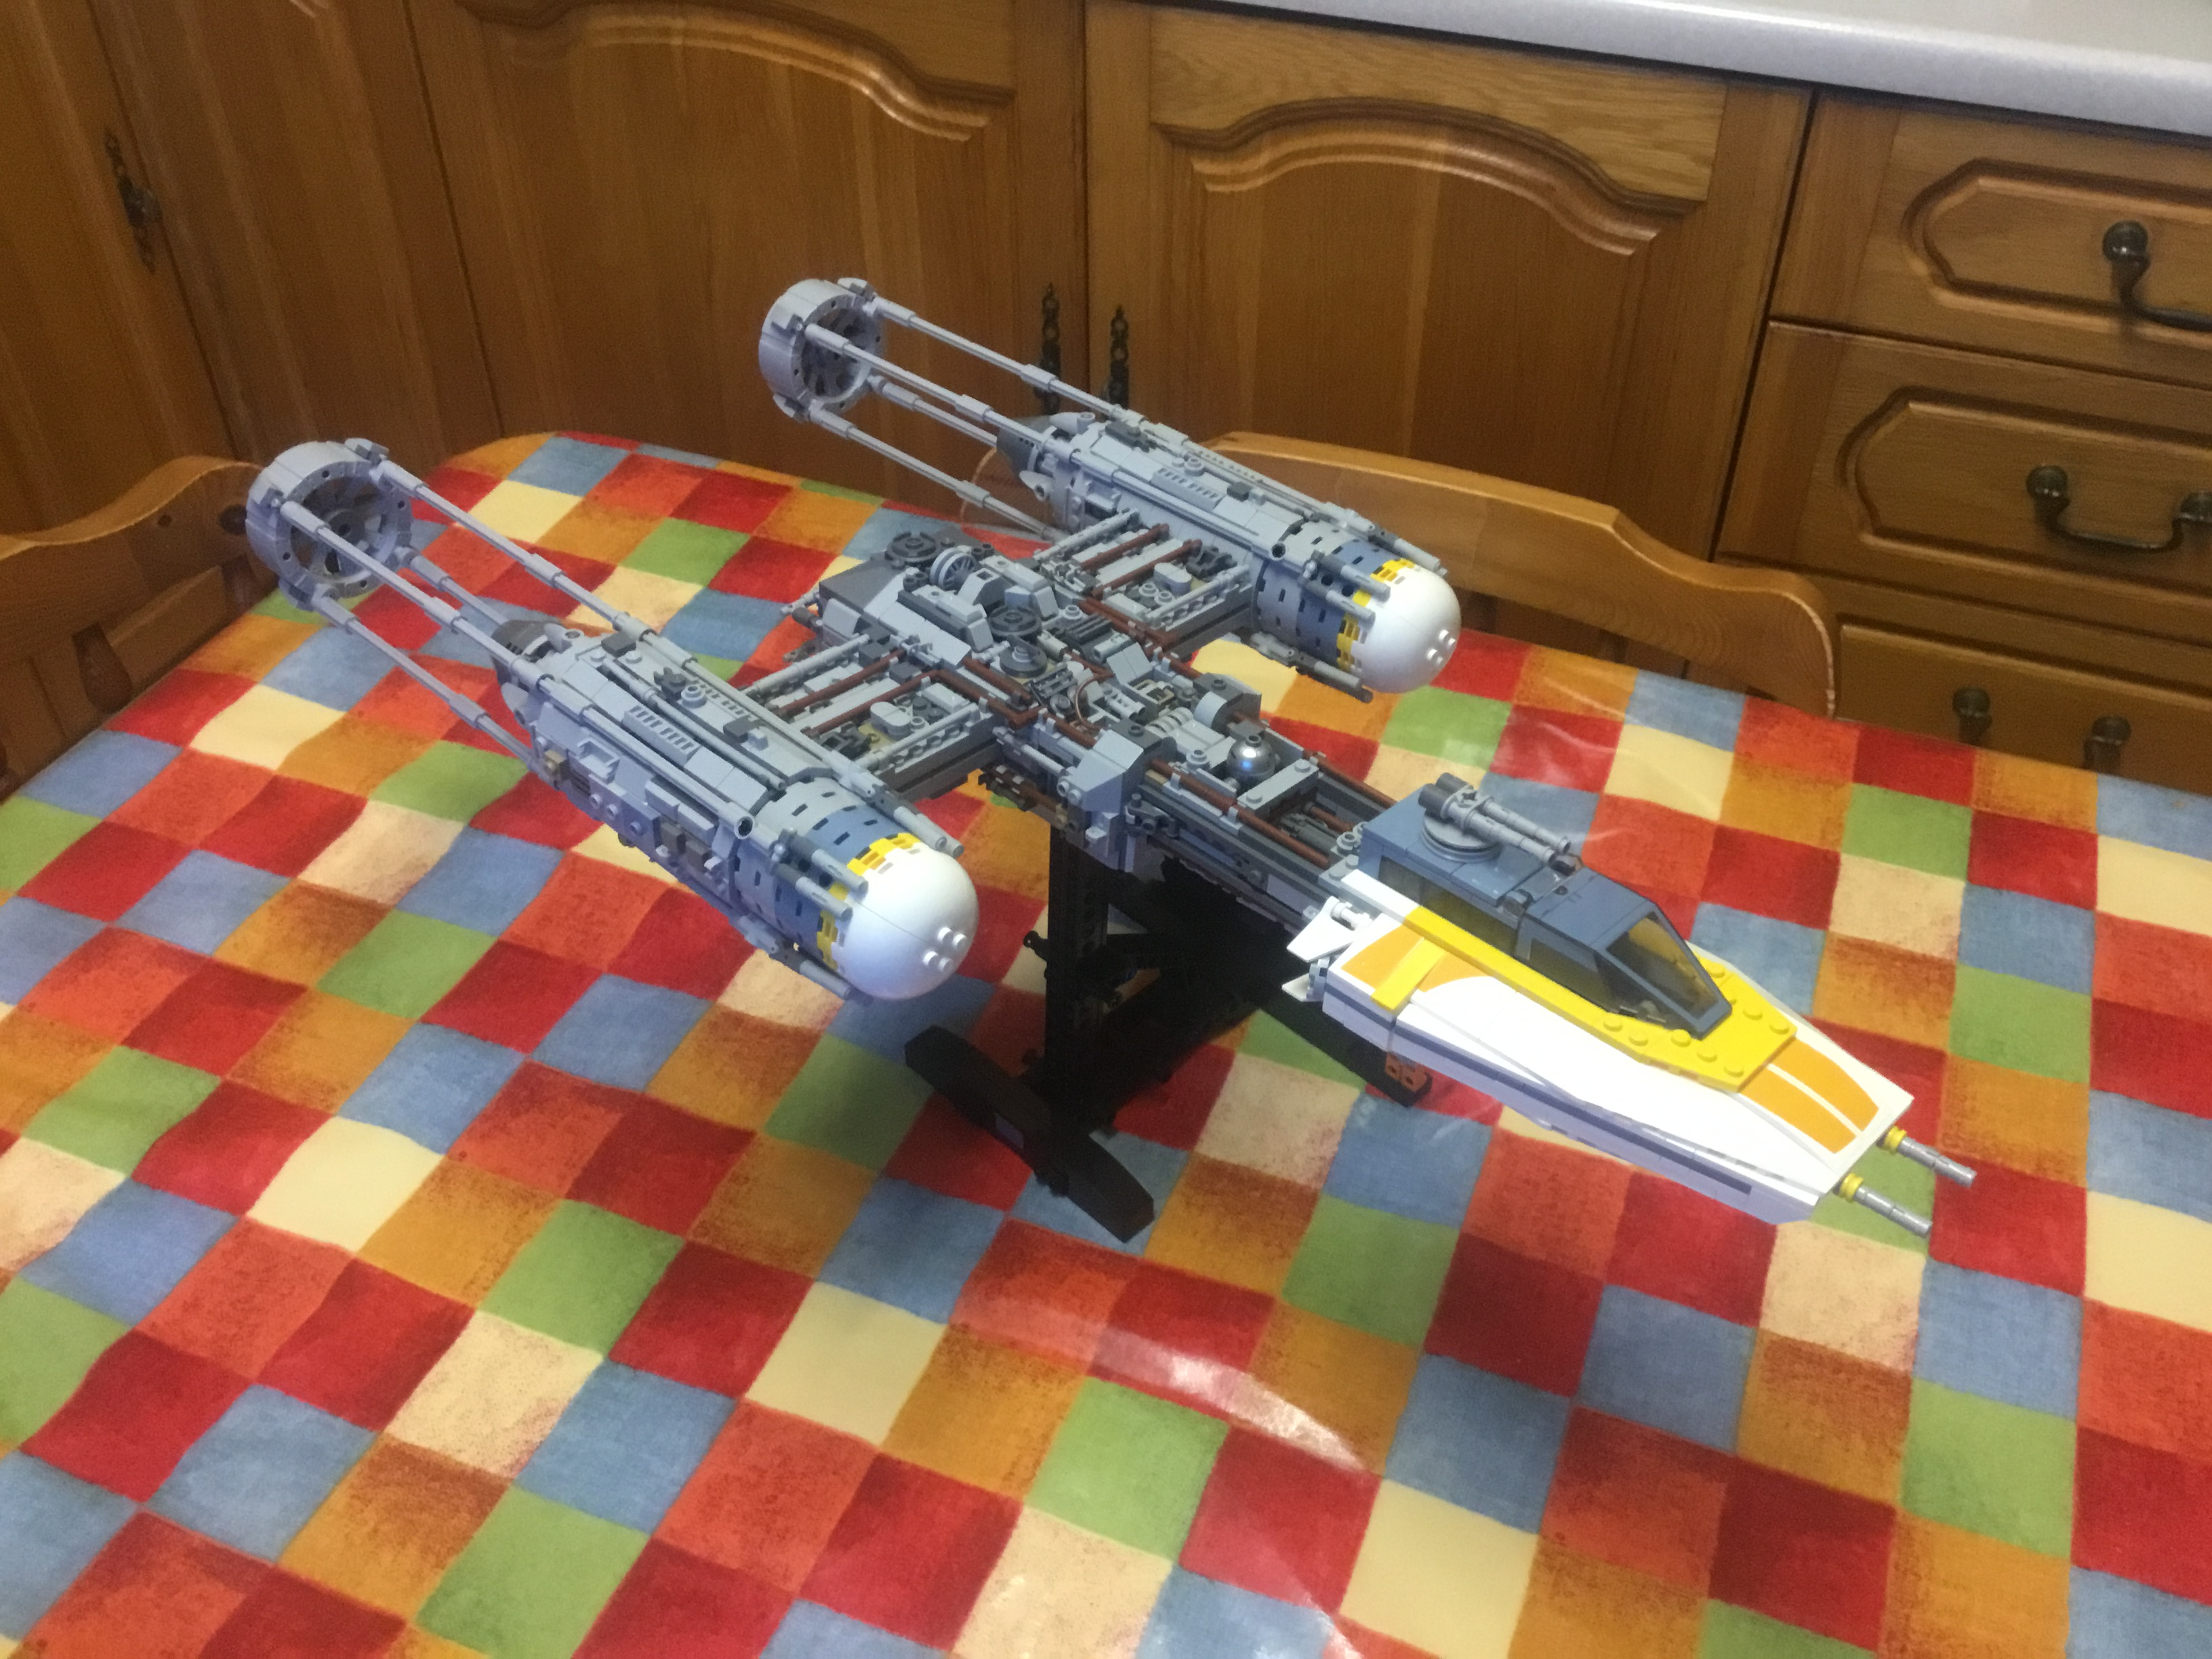 LEPIN 05143 Star Wars The 75181 New Y-wing Starfighter Block Set (2203Pcs) photo review